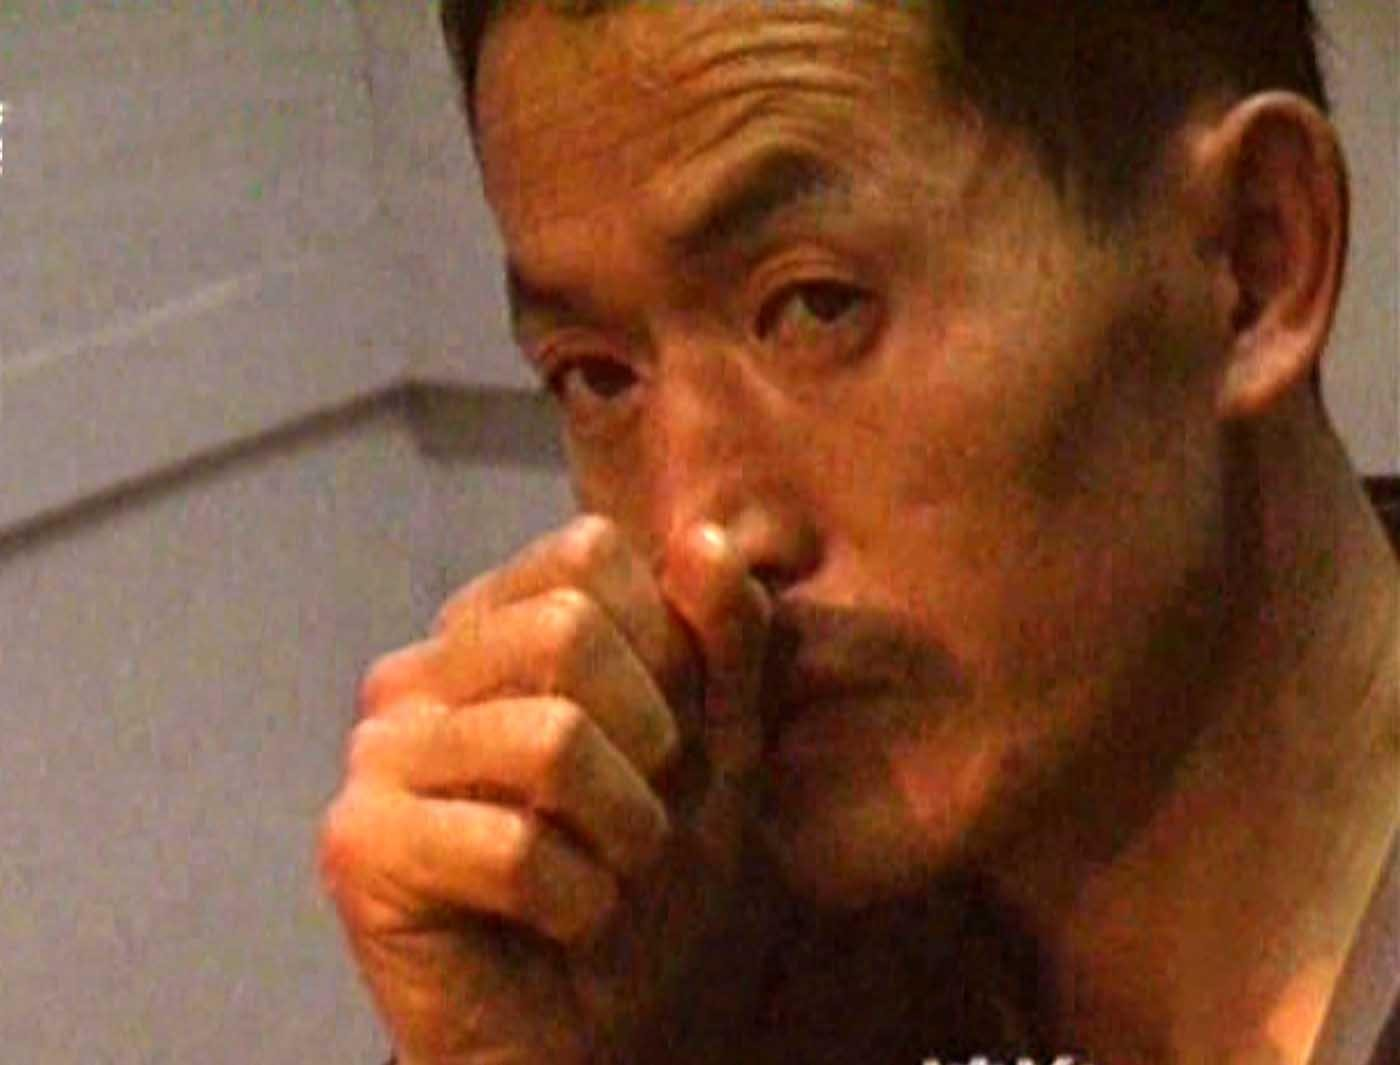 Chinese drifter among 7 of the world's worst serial killers | South